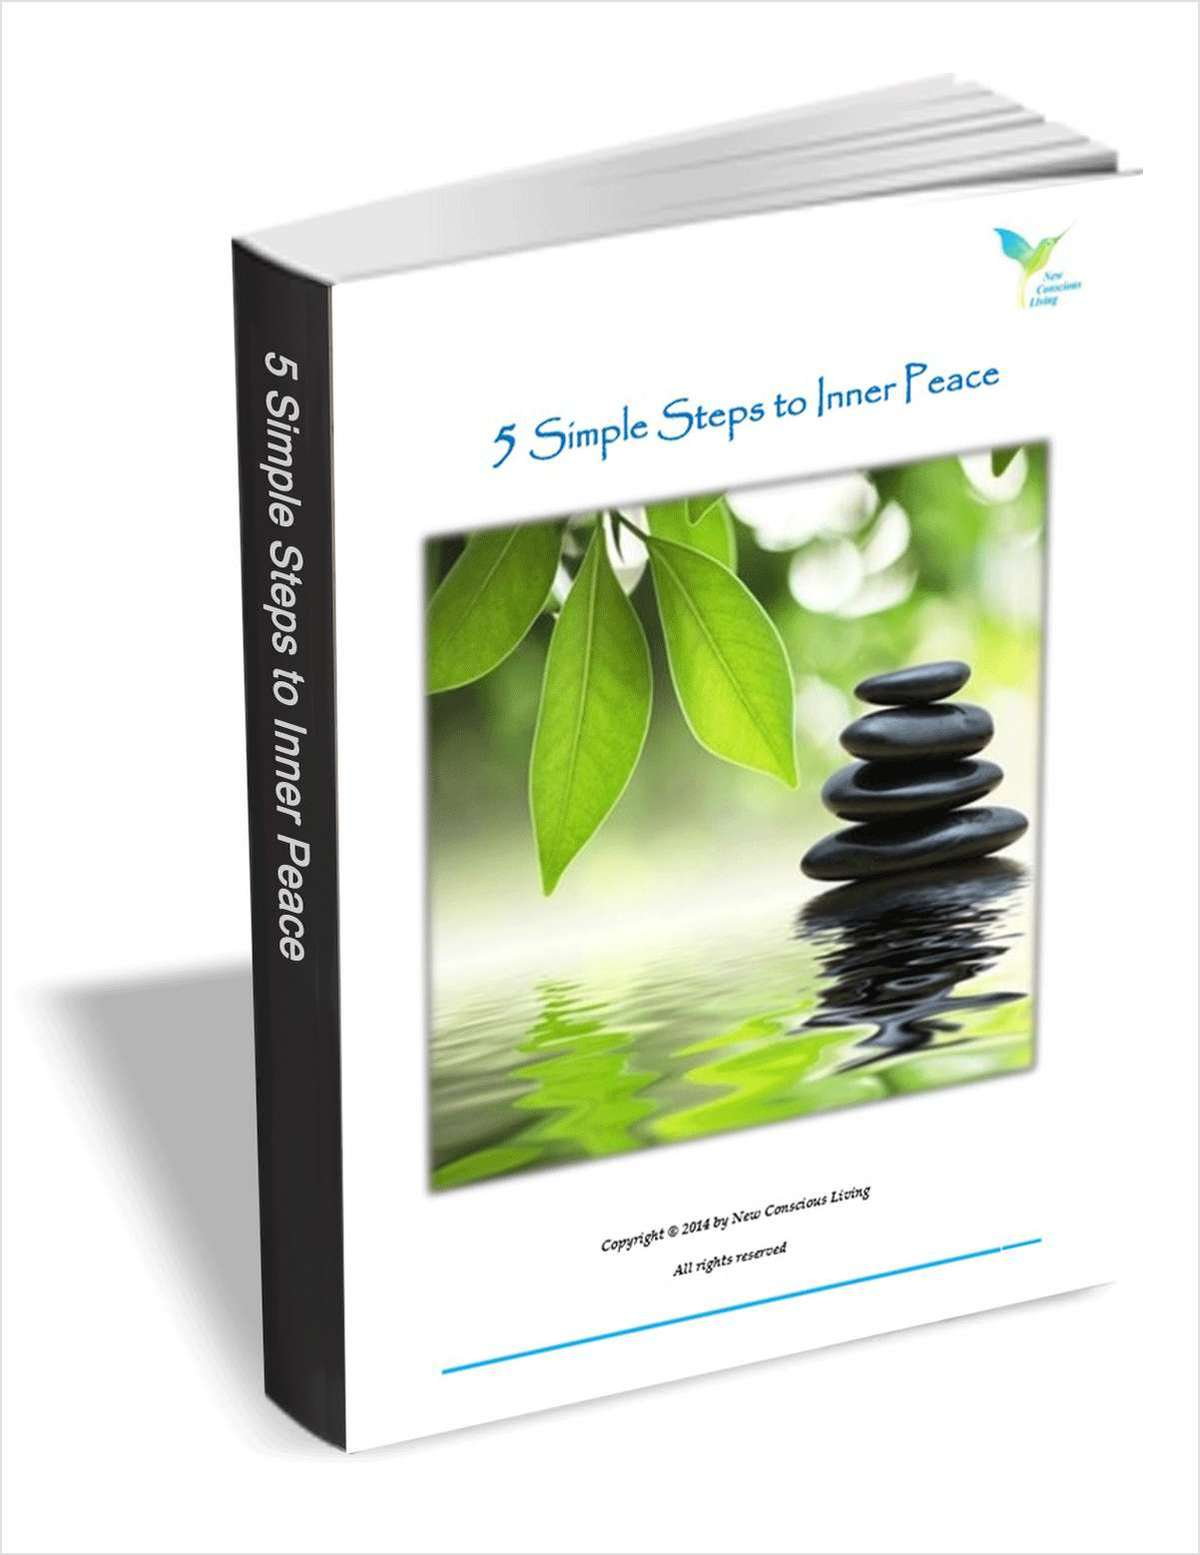 Download 5 Simple Steps to Inner Peace